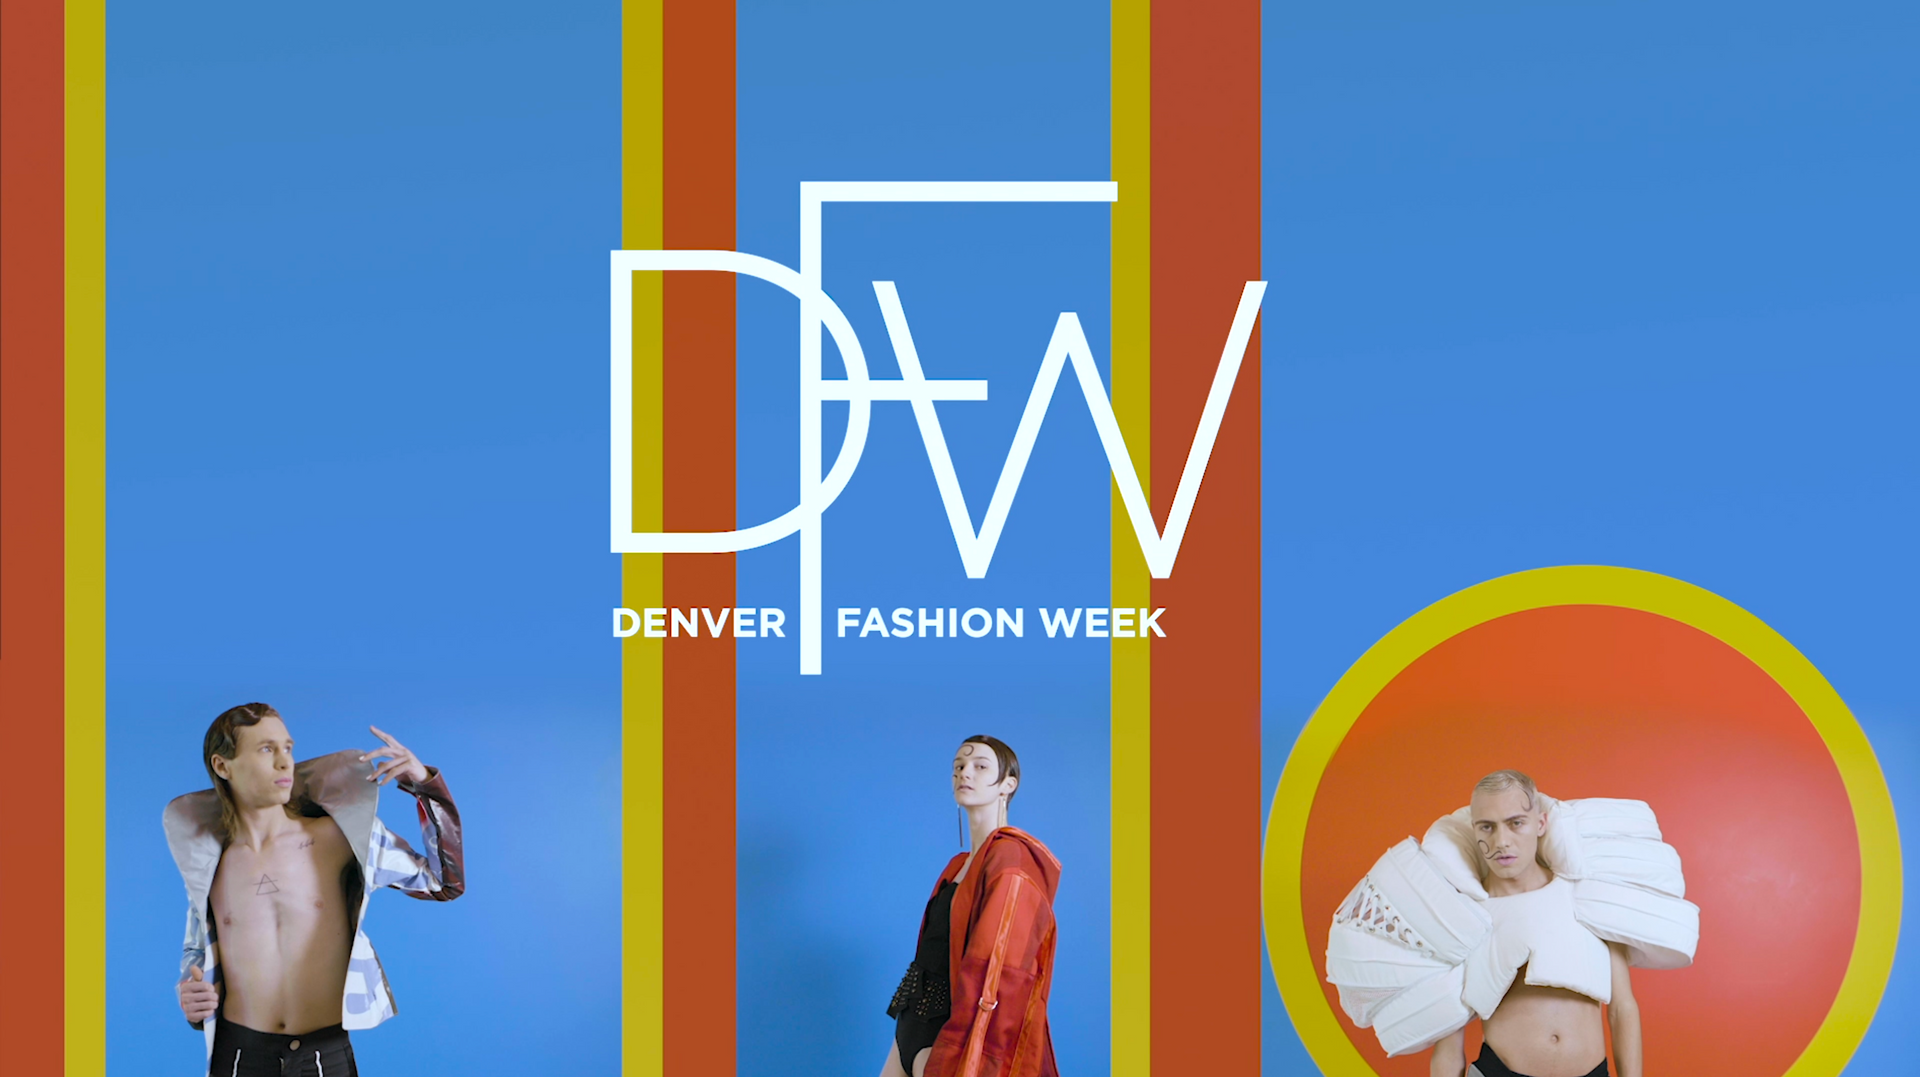 Denver Fashion Week Promo